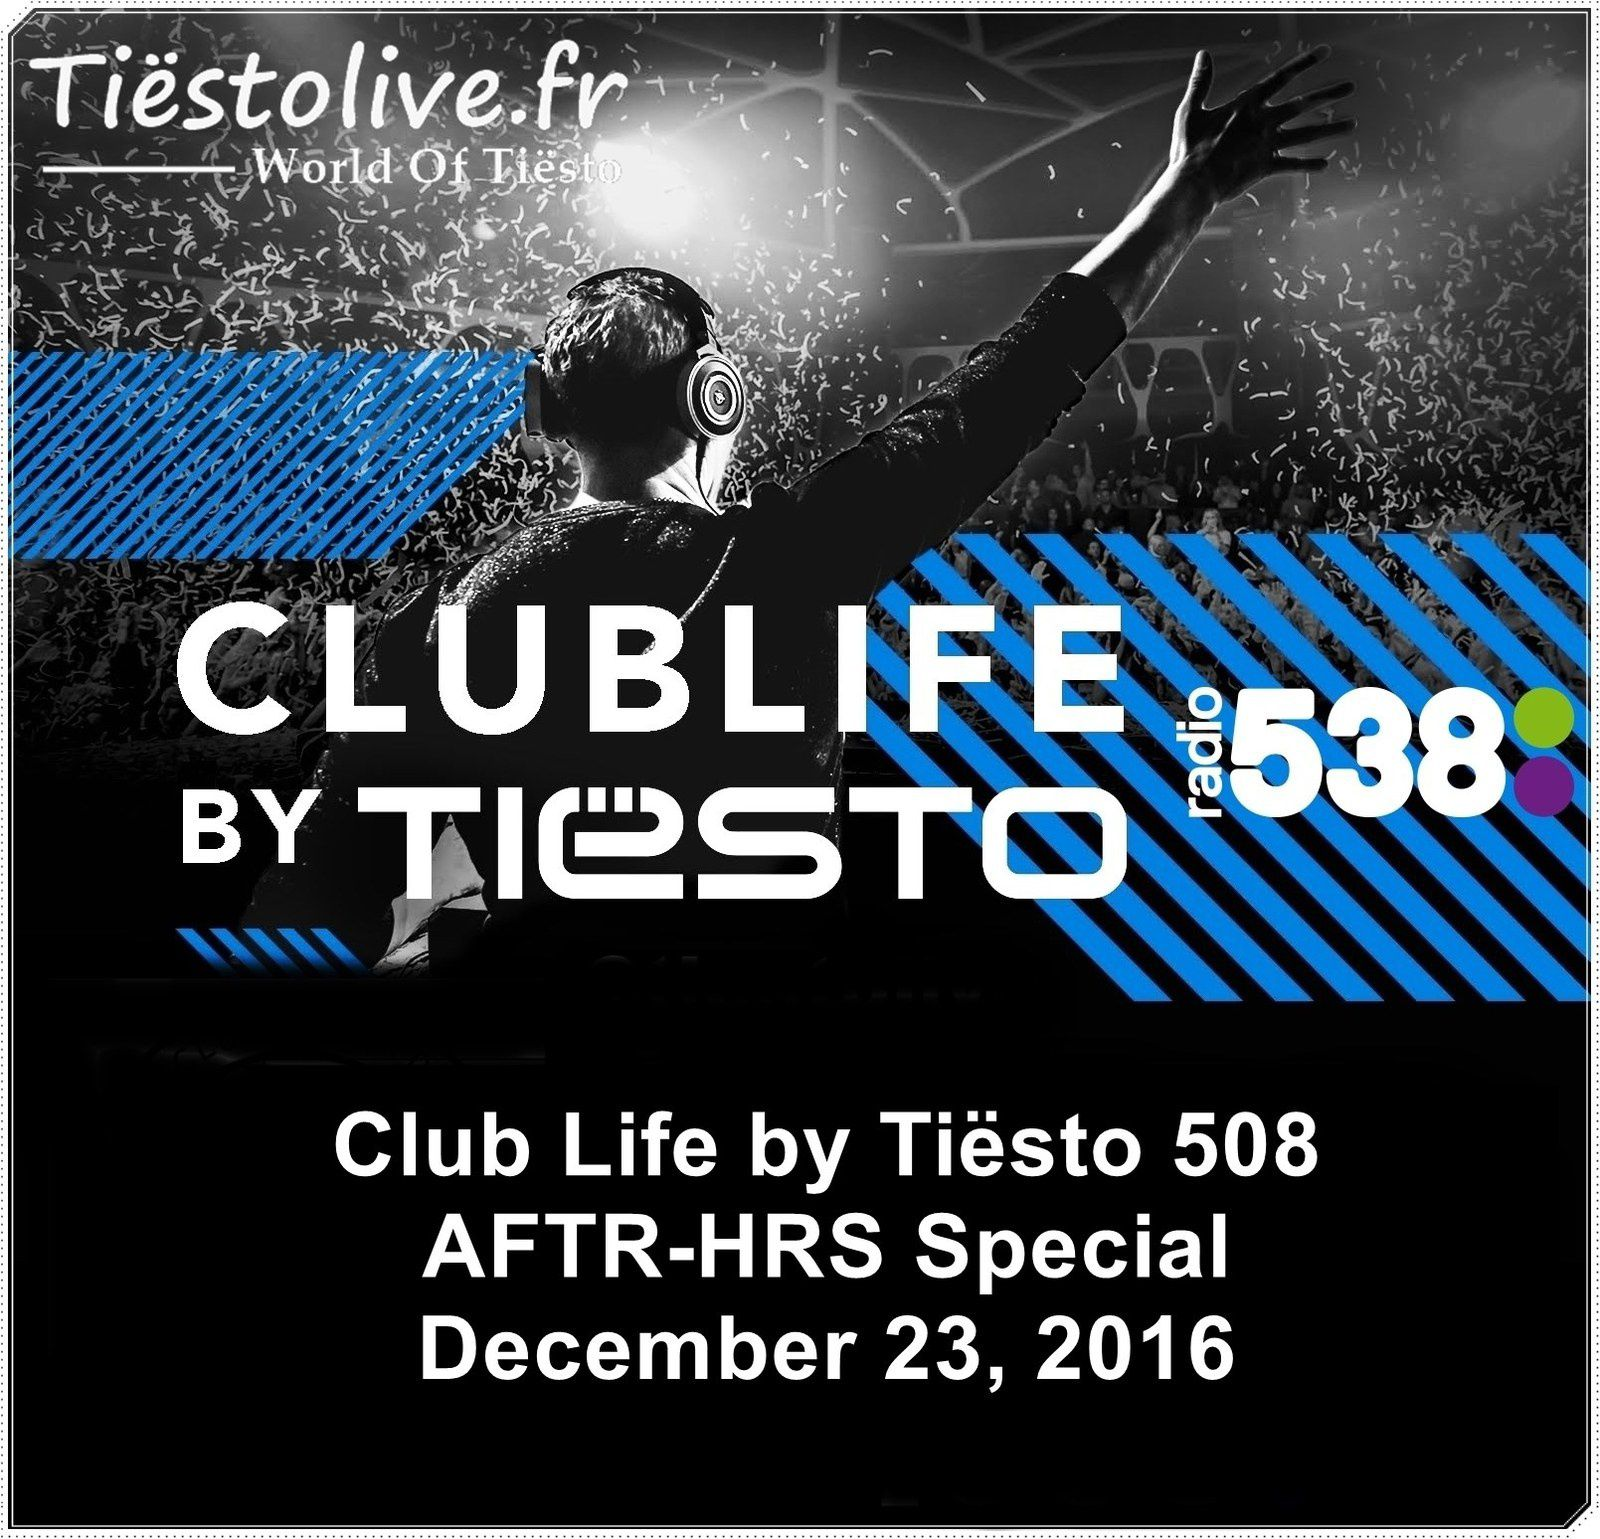 Club Life by Tiësto 508 - AFTR-HRS Special - December 23, 2016